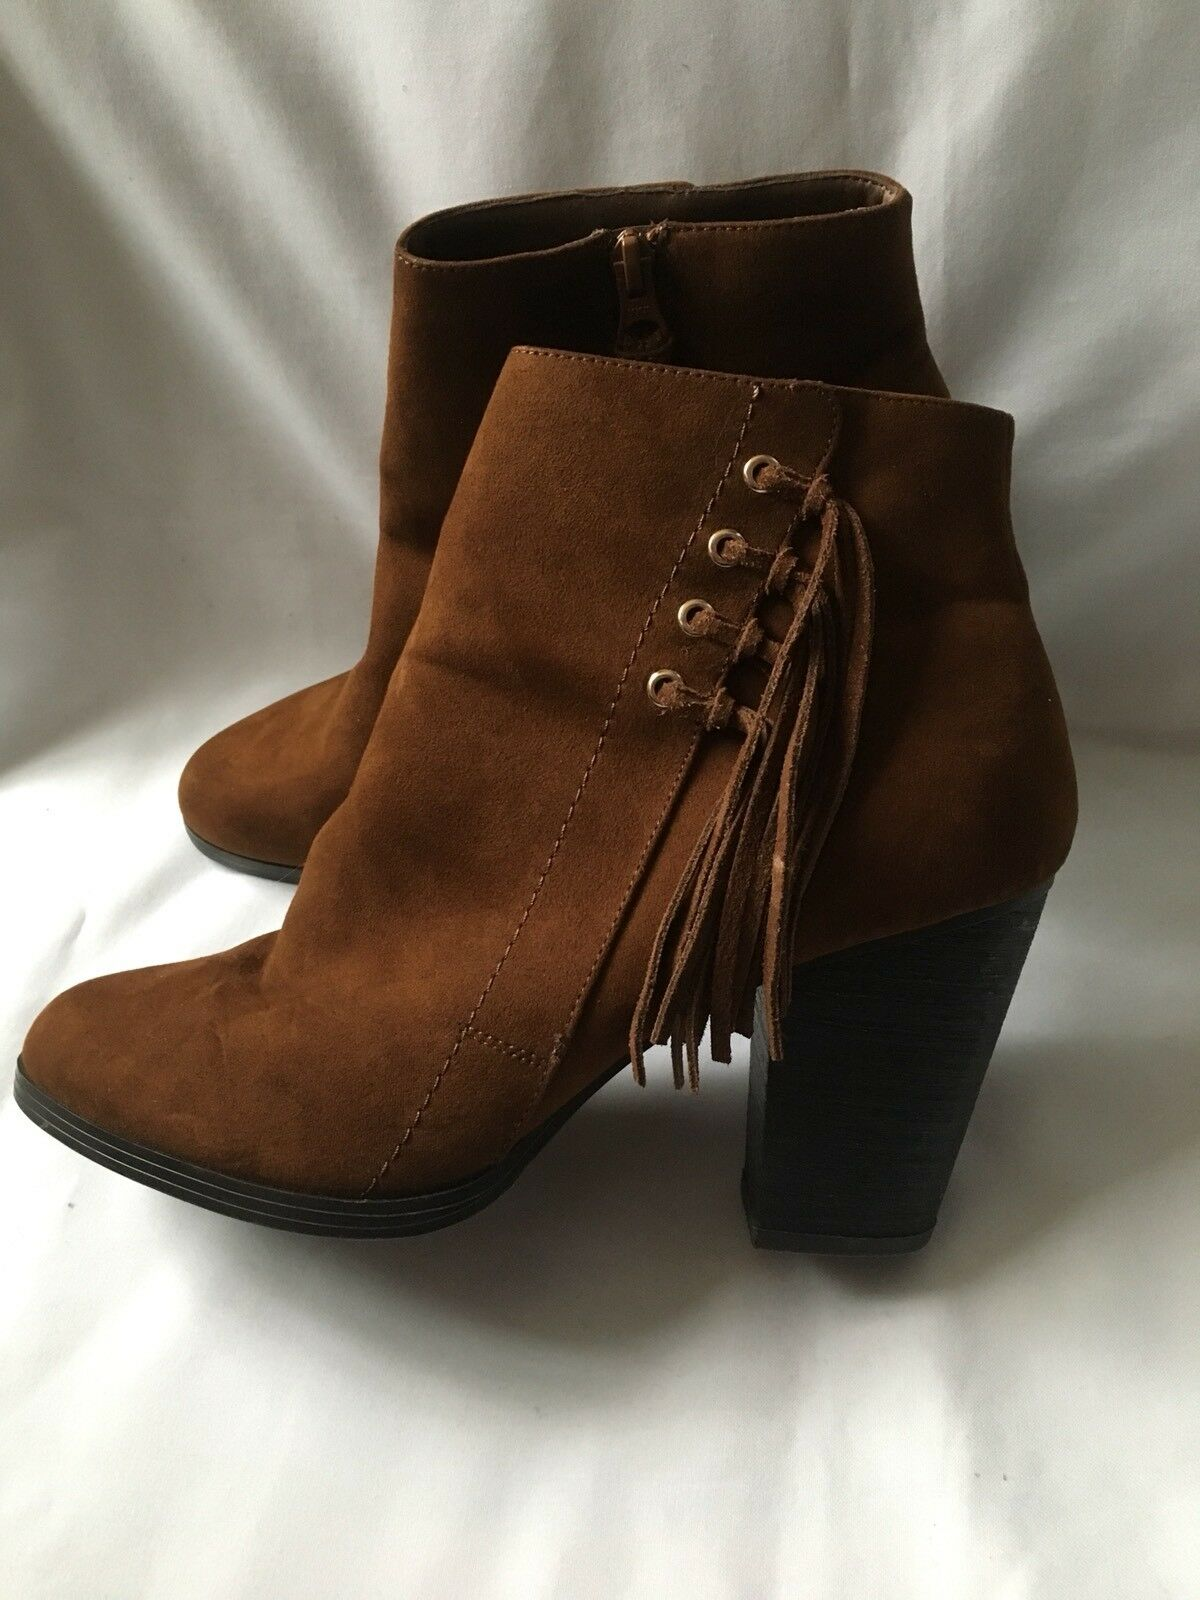 New Look Women's Suede Brown Ankle Boots Size 8(42)